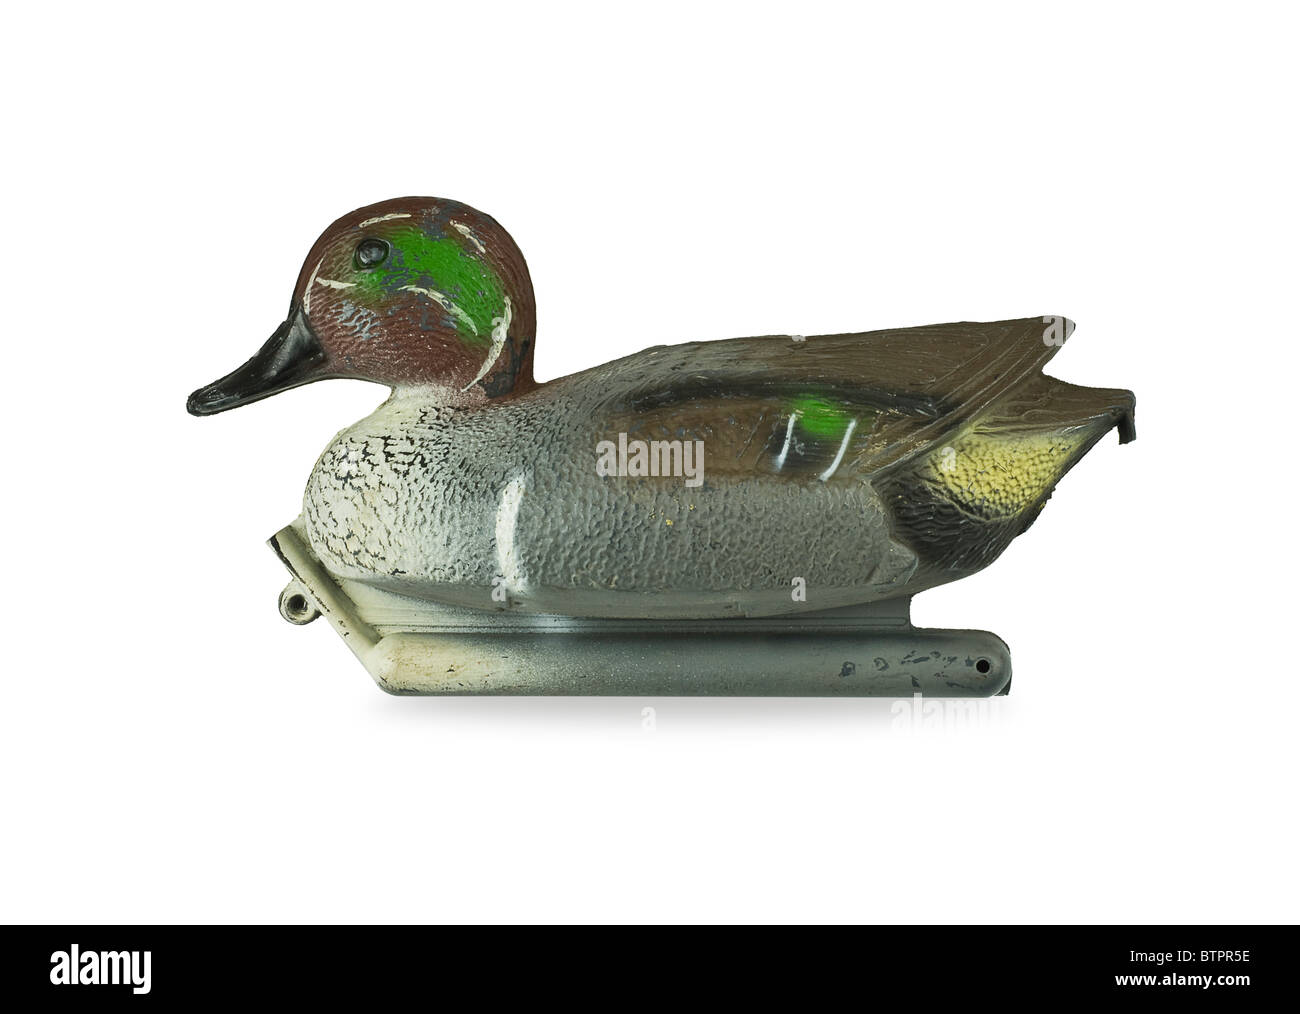 Decoy duck - Stock Image